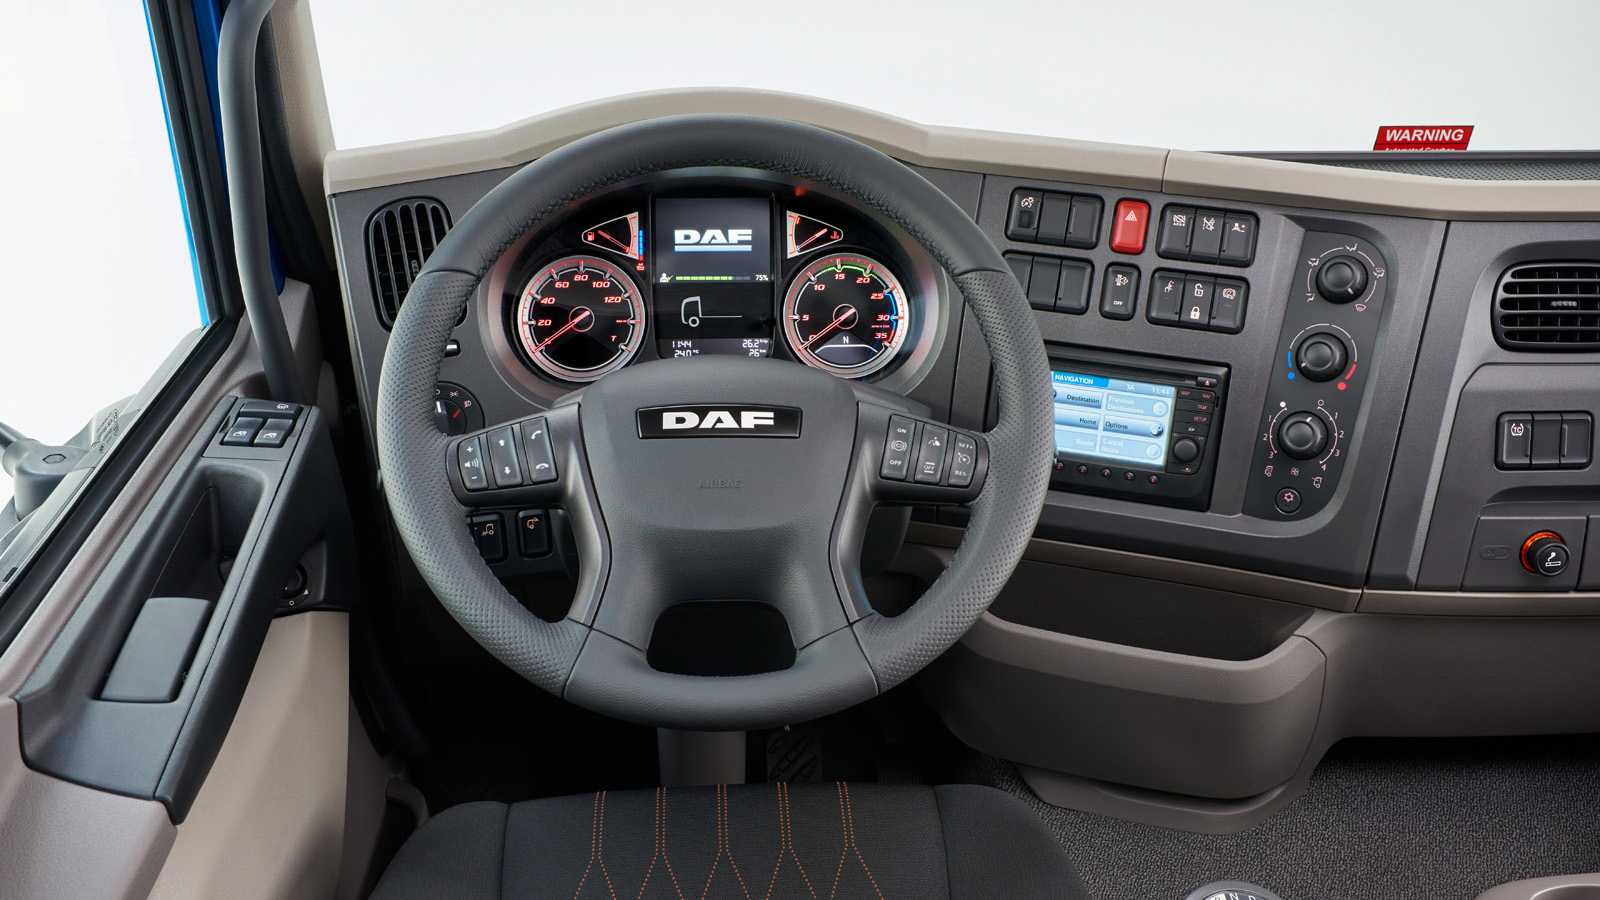 DAF The New LF interior features